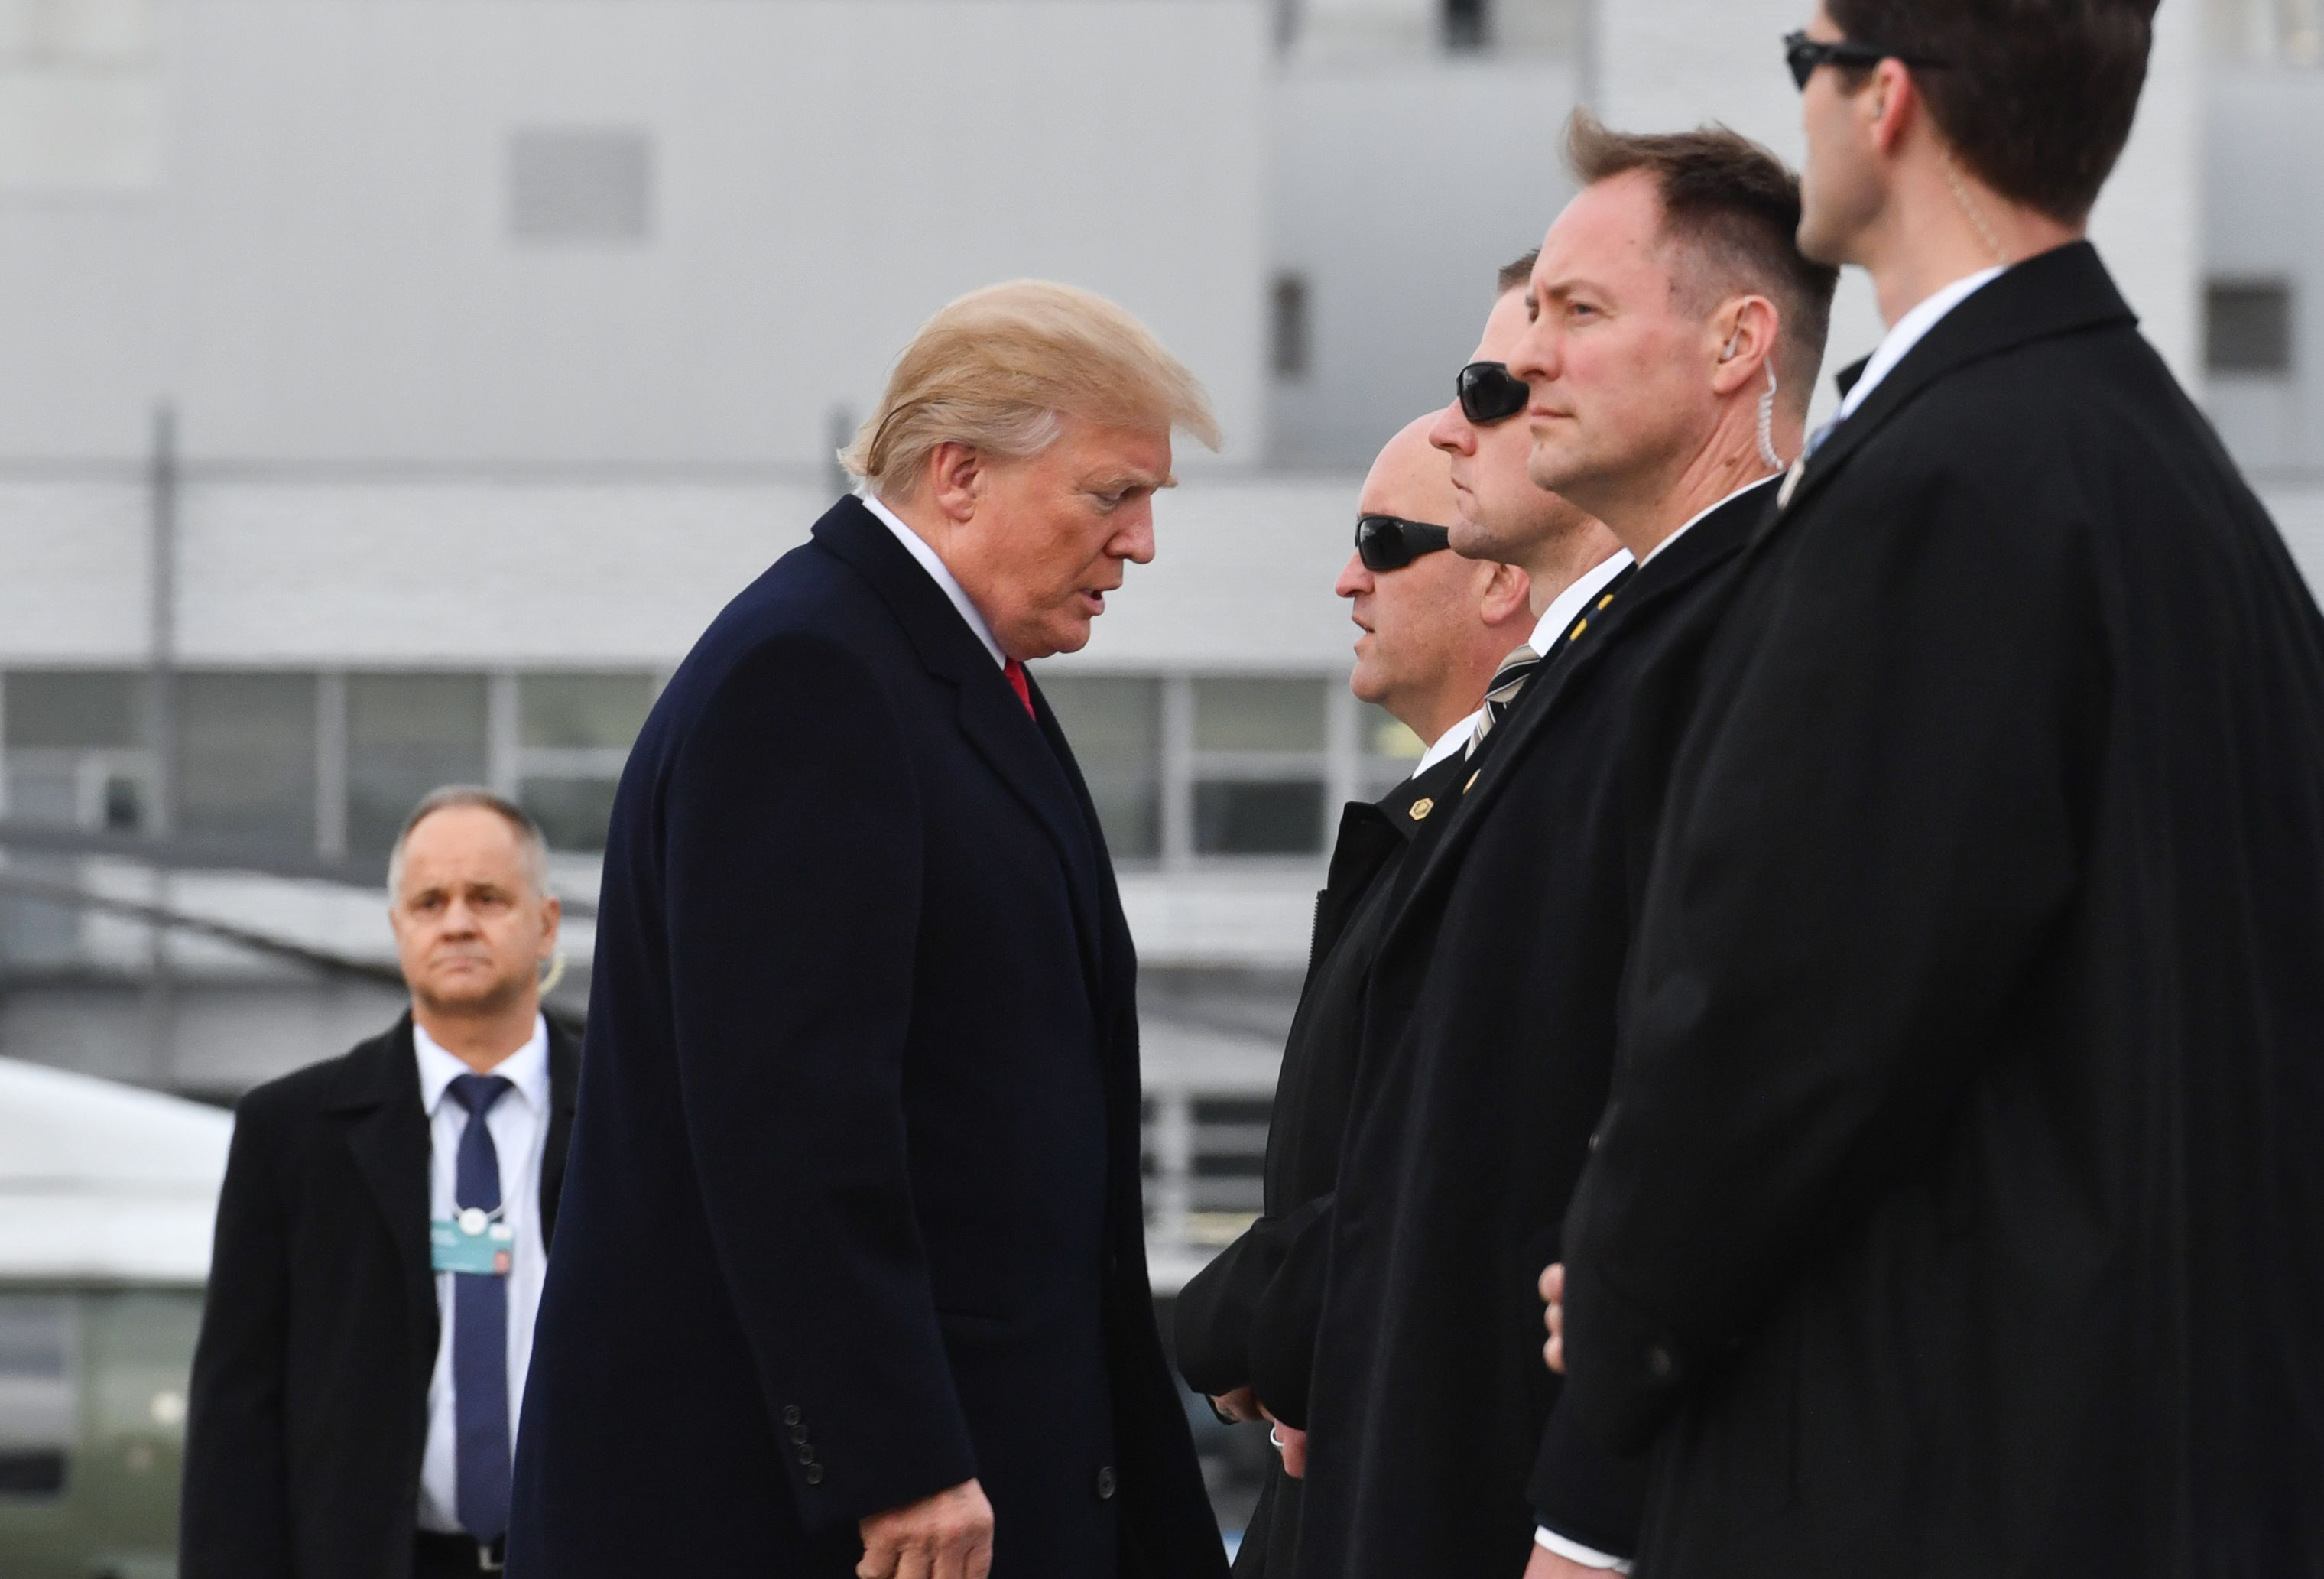 US President Donald Trump arrives before boarding the Air Force One ahead of his departure from Zurich Airport in Zurich on January 26, 2018.